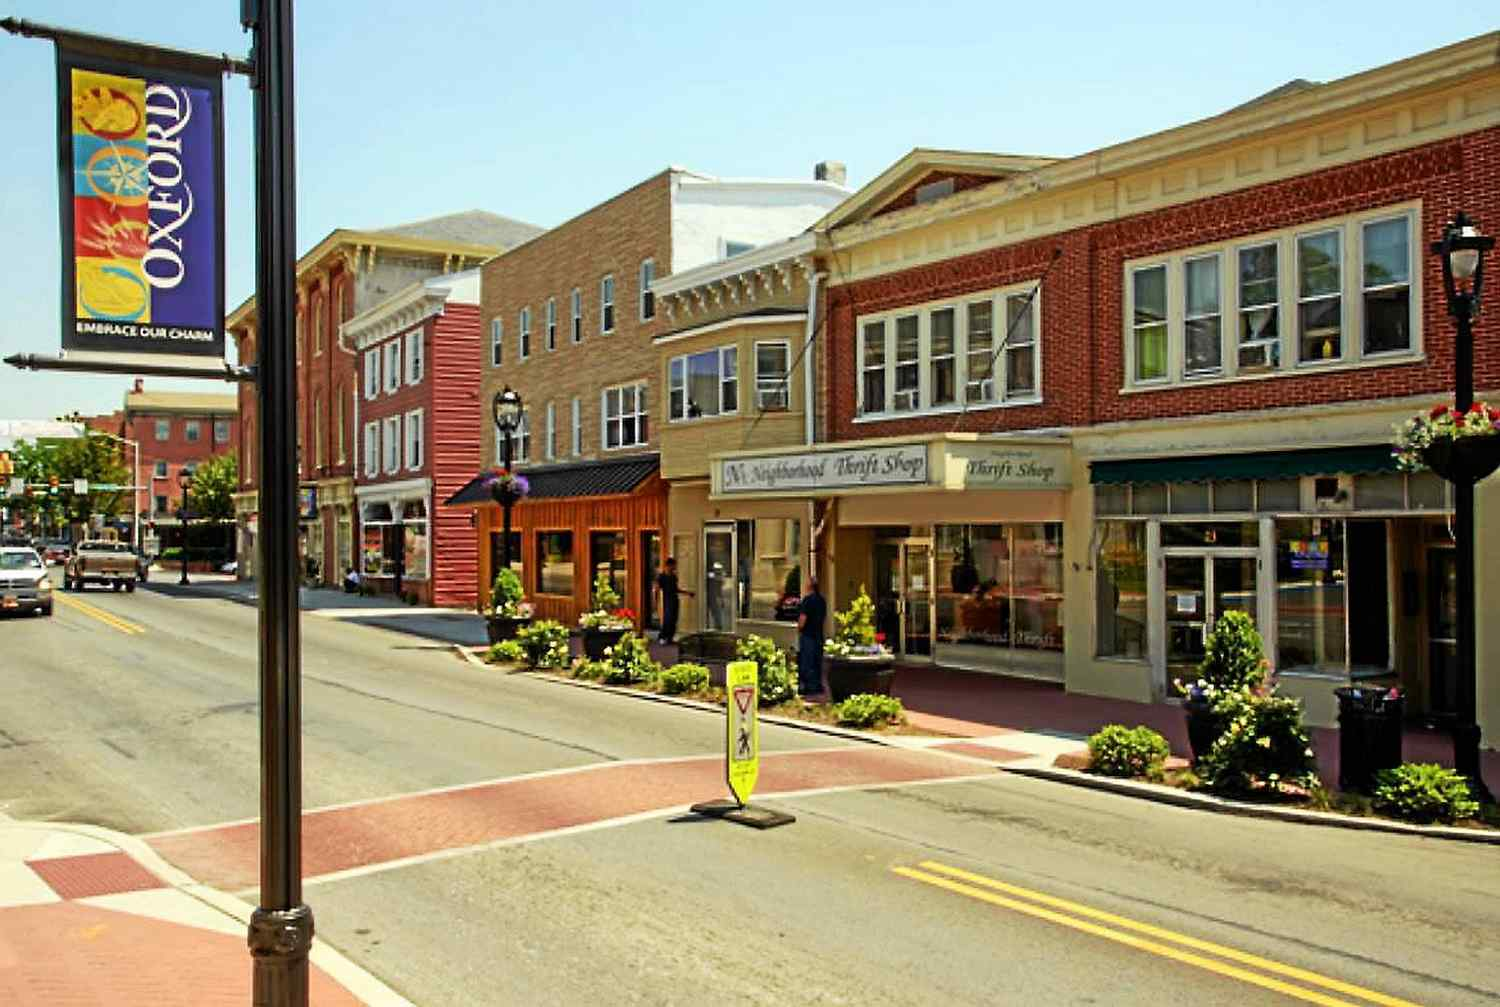 Downtown Oxford Recognized for 'Commitment to Achieving Meaningful Improvements'